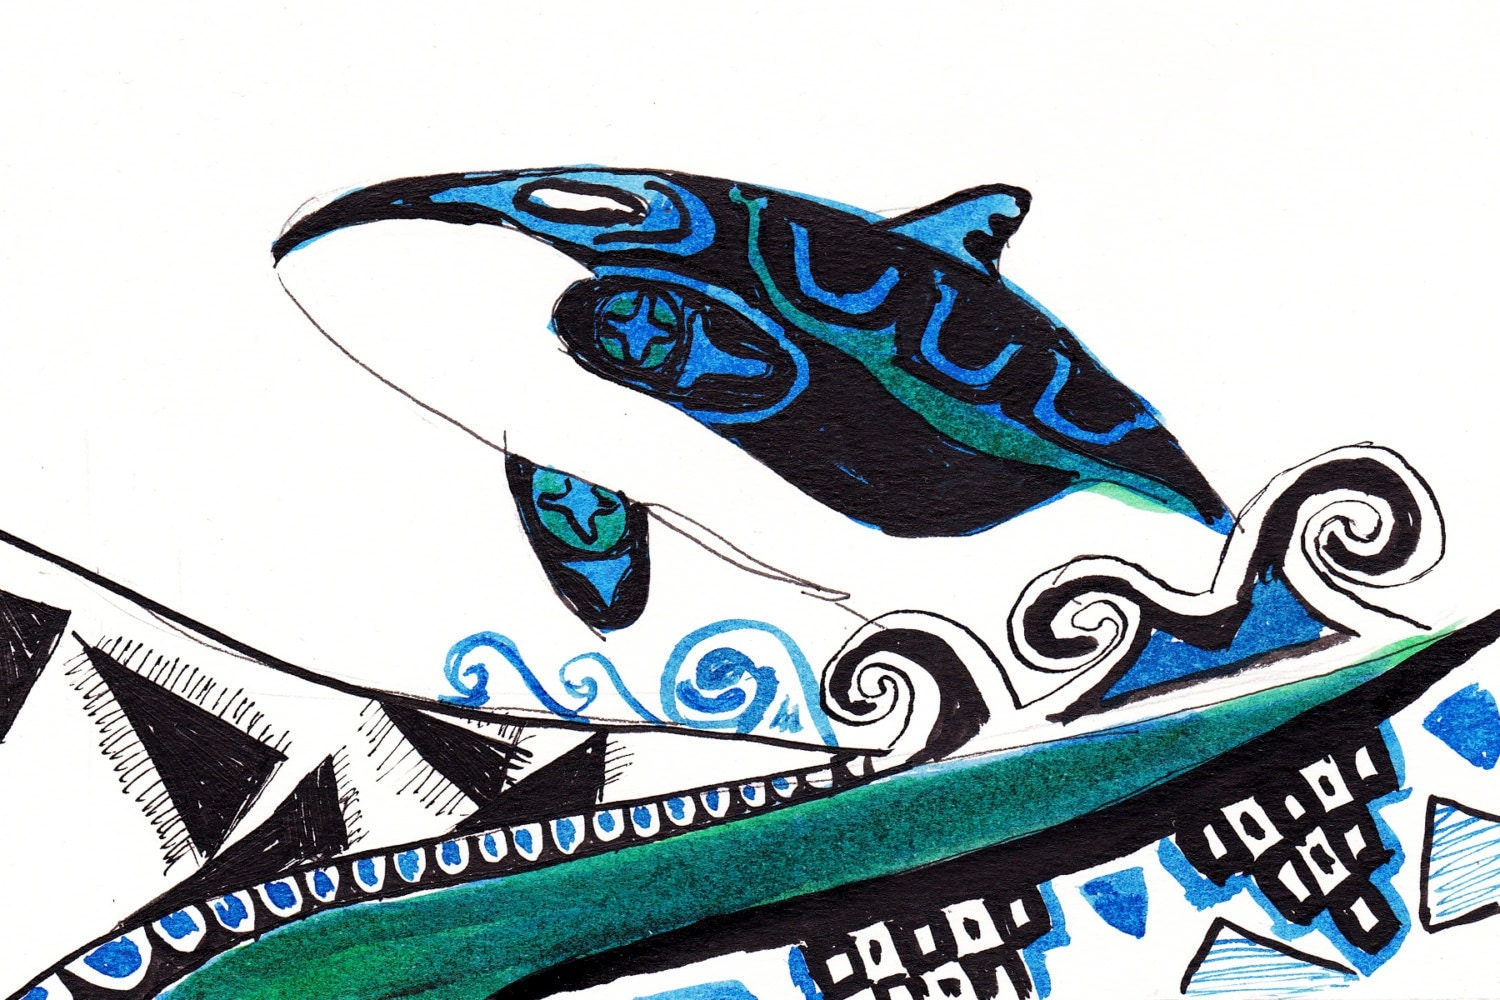 Native American Art First Nations Inuit and American